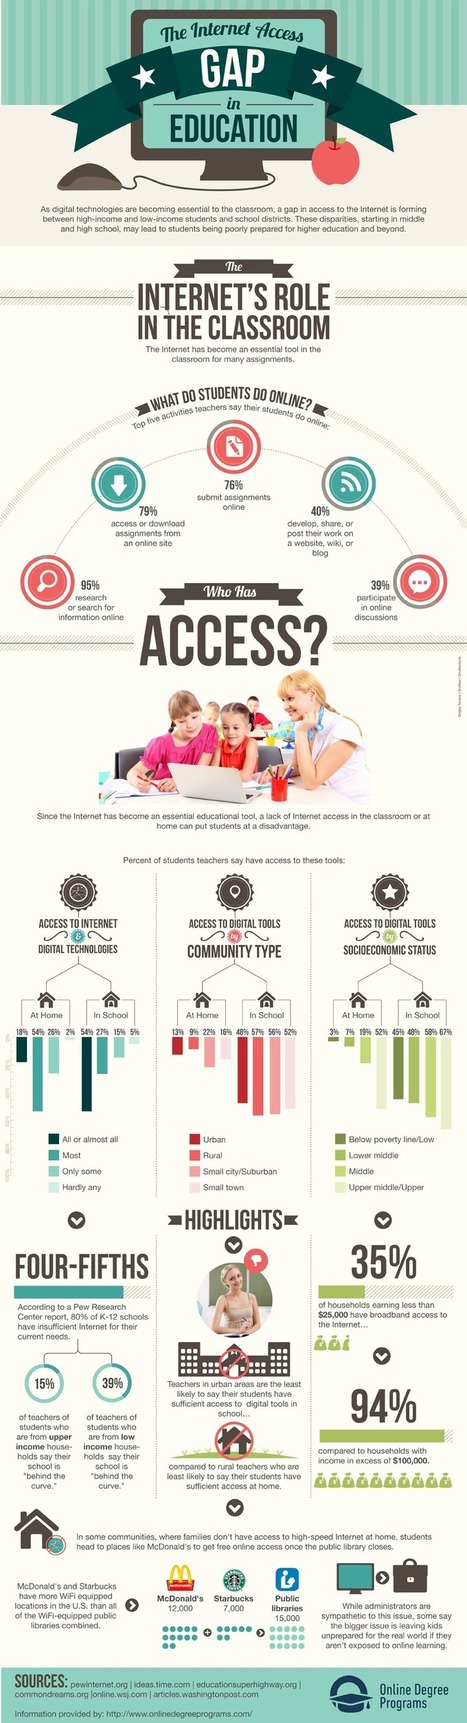 Internet-Gap-Education-800.png (800x2952 pixels) | Instructional Technology and Other Cool Stuff | Scoop.it